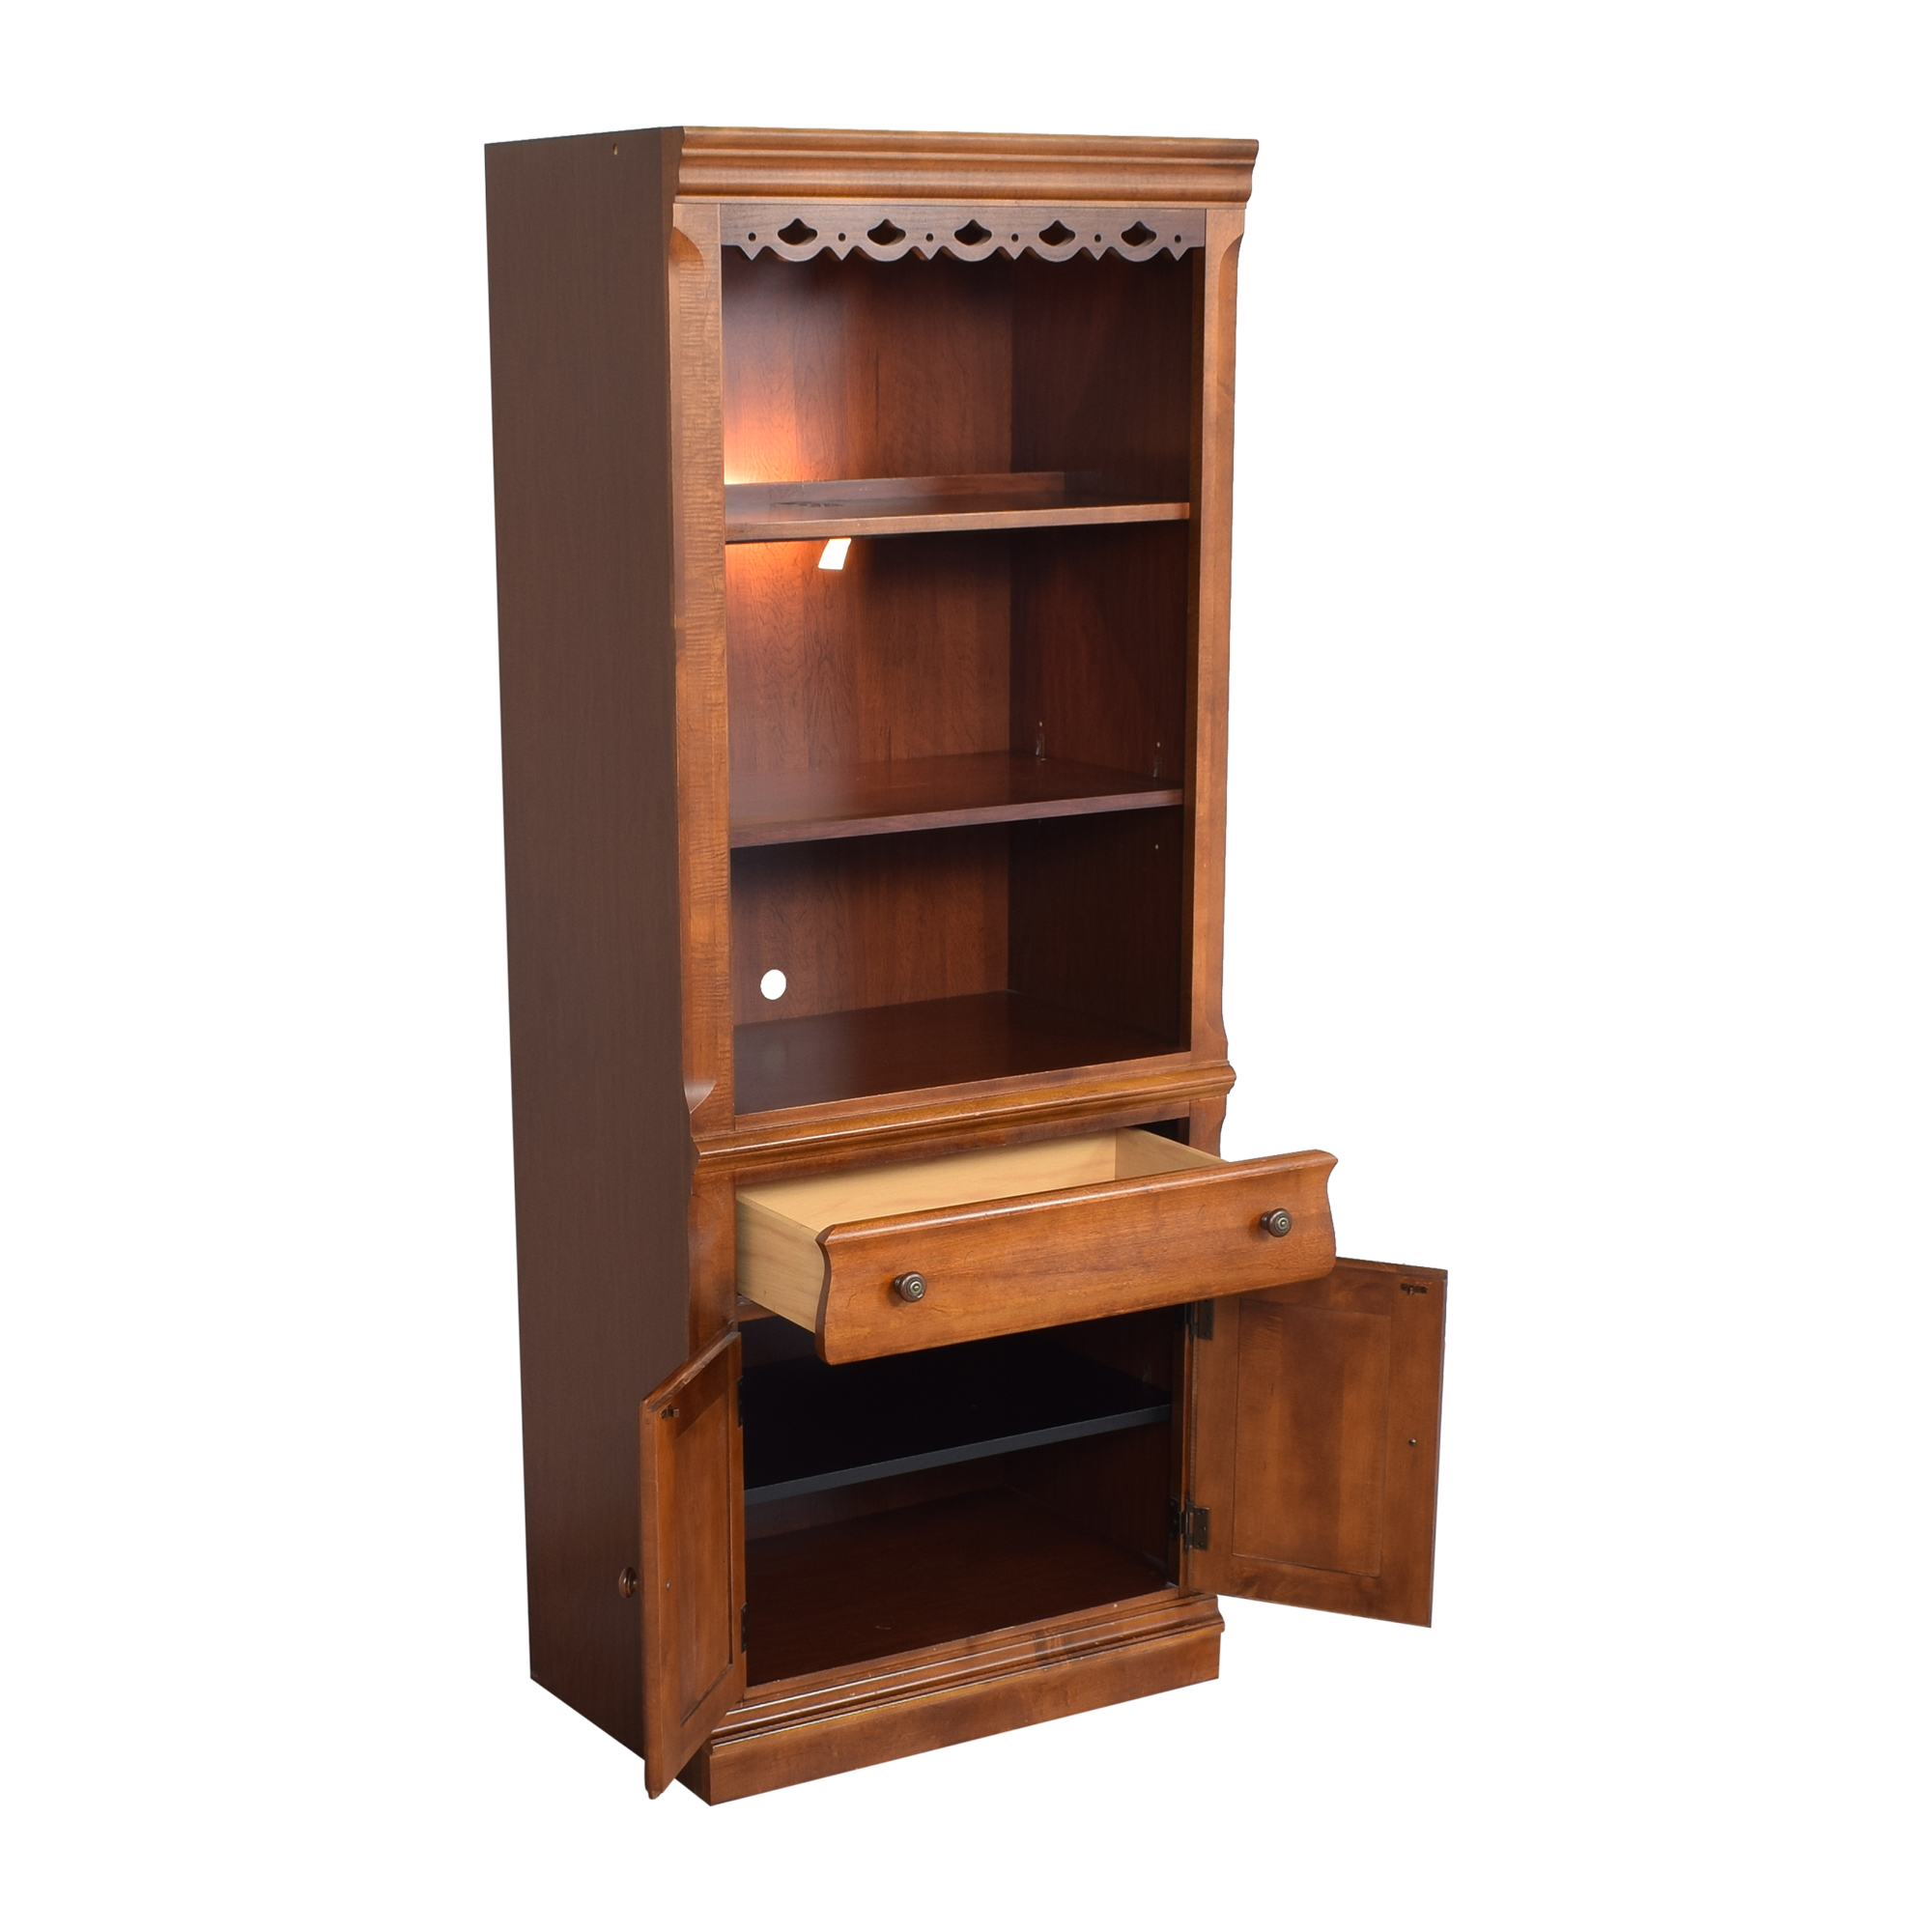 Broyhill Furniture Broyhill Furniture Lighted Bookcase nyc